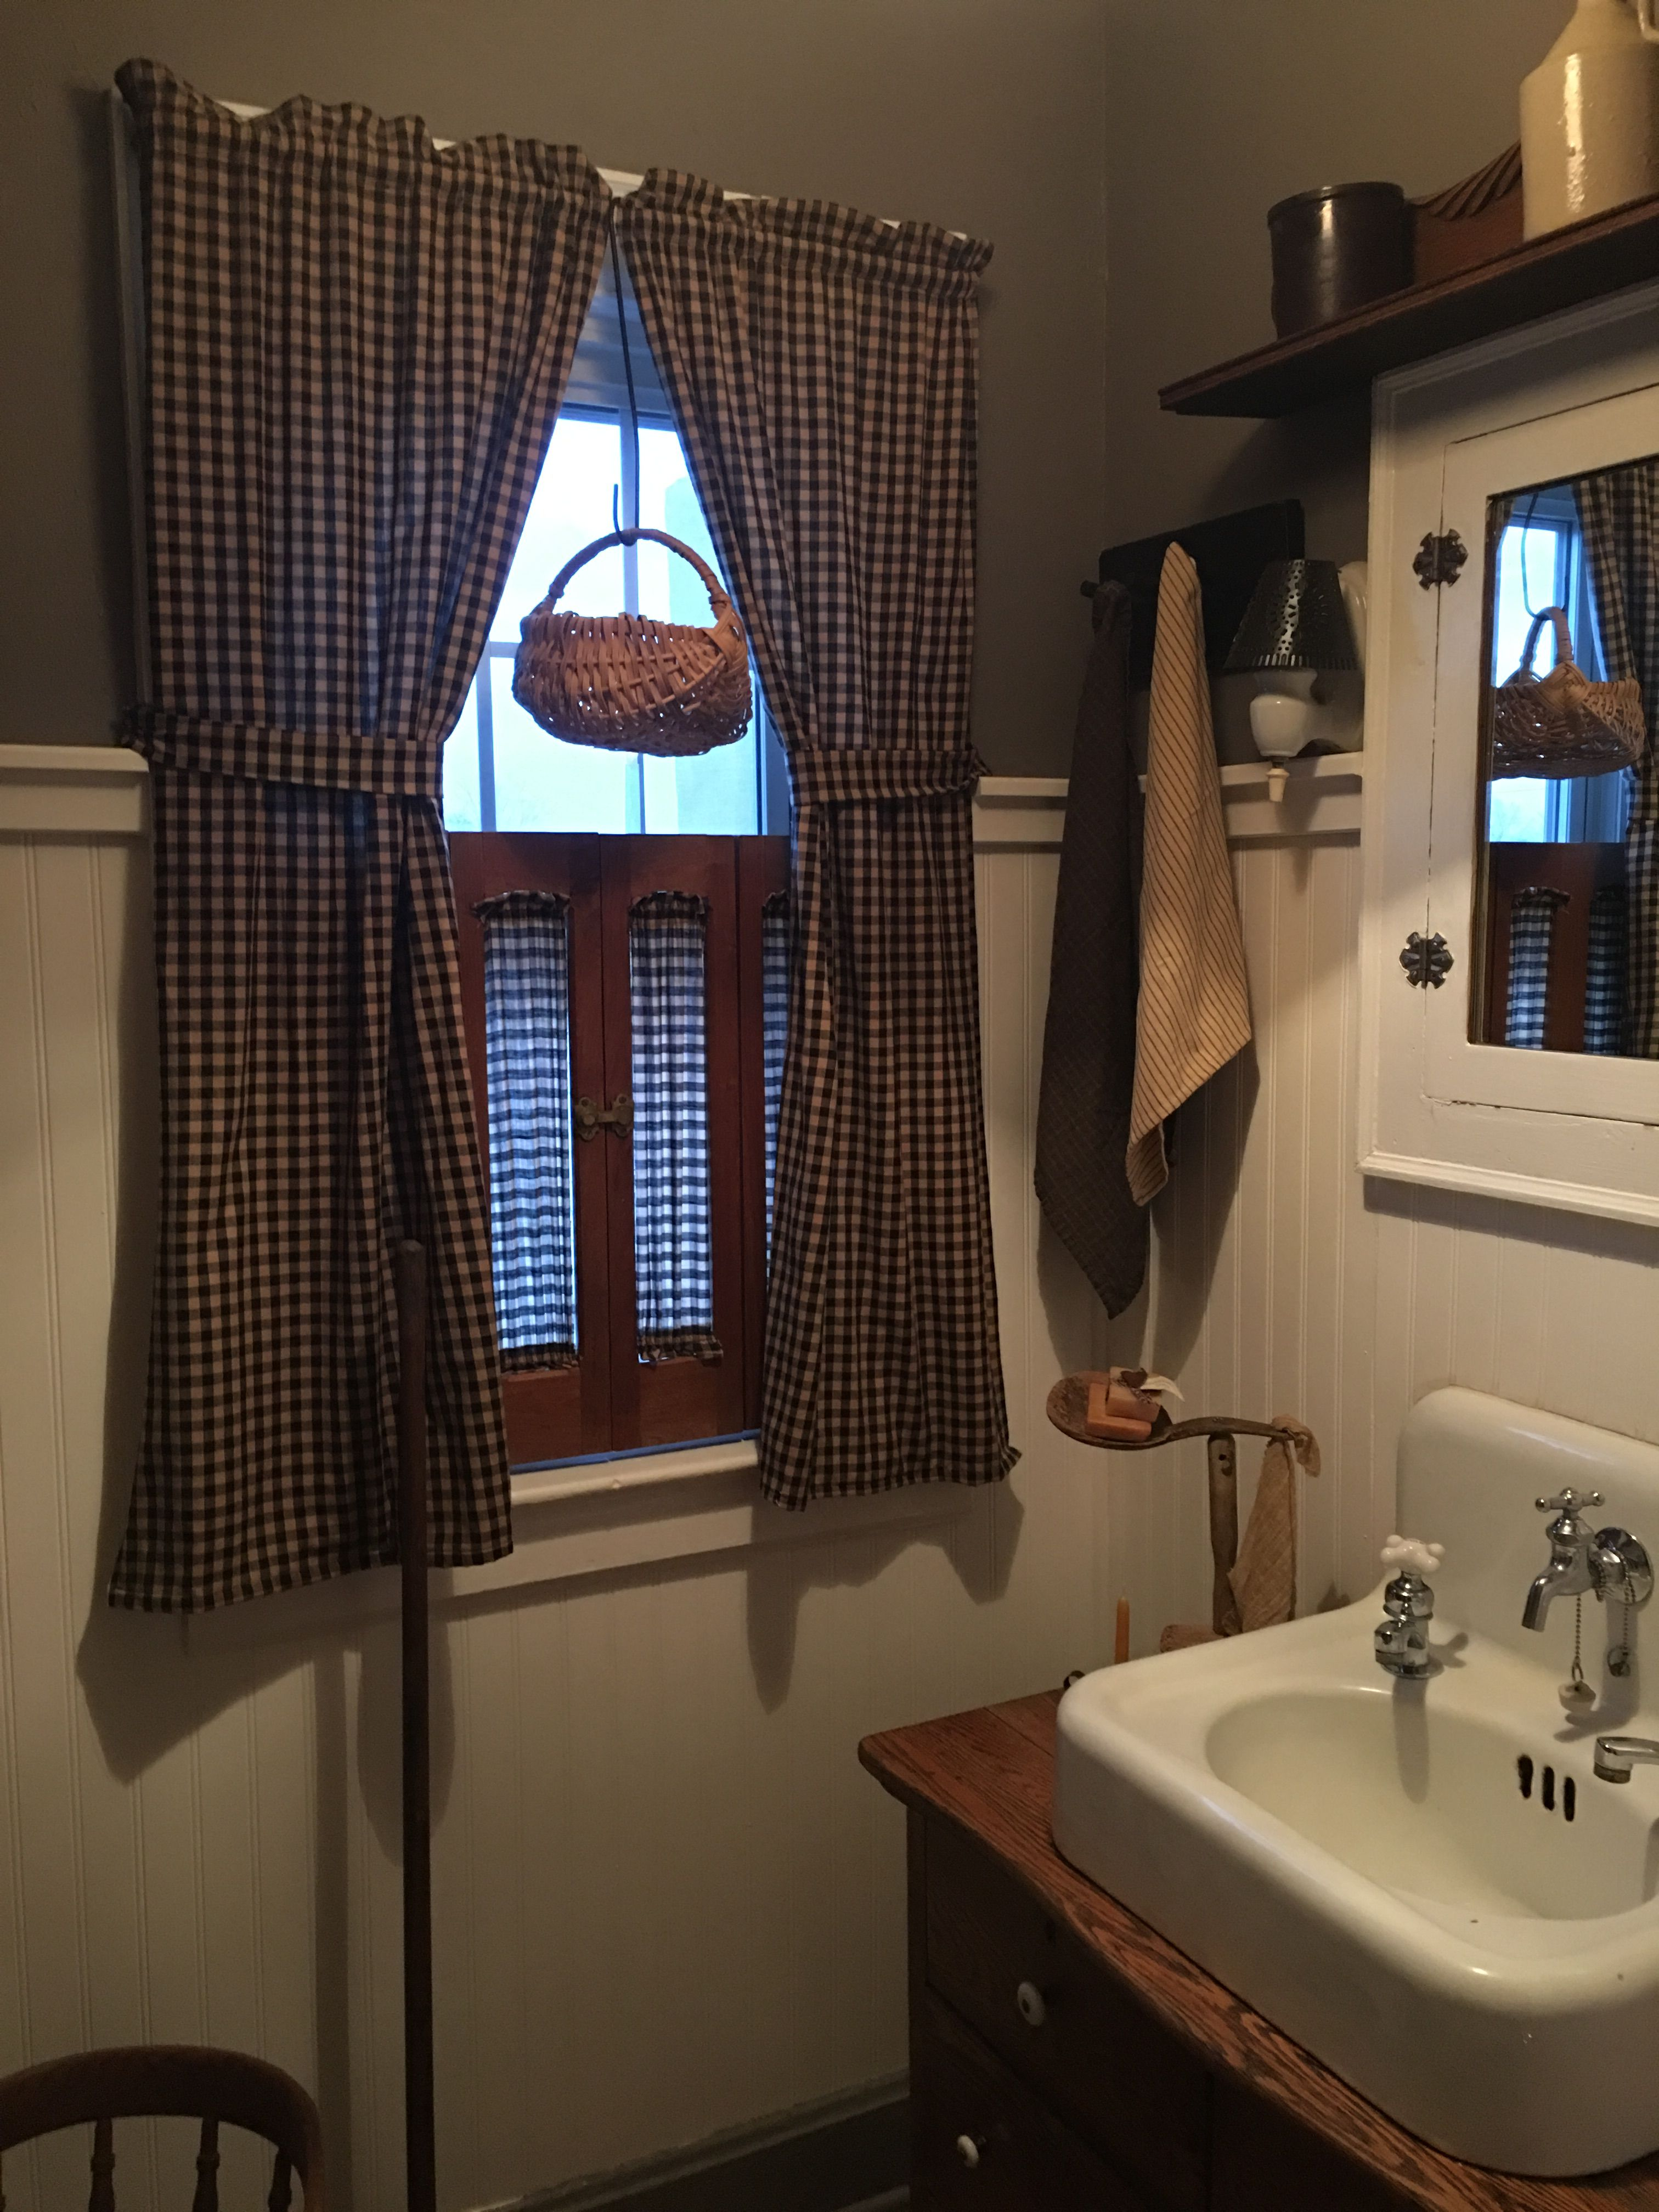 Pin by Sherri Hall on Our home | Pinterest | Primitives, Primitive Primitive Country Bathroom Designs on art deco bathrooms, colonial primitive bathrooms, old country bathrooms, country themed bathrooms, rustic bathrooms, primitive bathroom ideas, old farmhouse bathrooms, country living bathrooms, country style bathrooms, primitive bathroom vanity, cottage bathrooms, primitive stars hearts bathroom, french style bathrooms, primitive bathroom colors, primitive bathrooms designs, primitive small bathroom, vintage bathrooms, small country bathrooms, unique bathrooms, french country bathrooms,